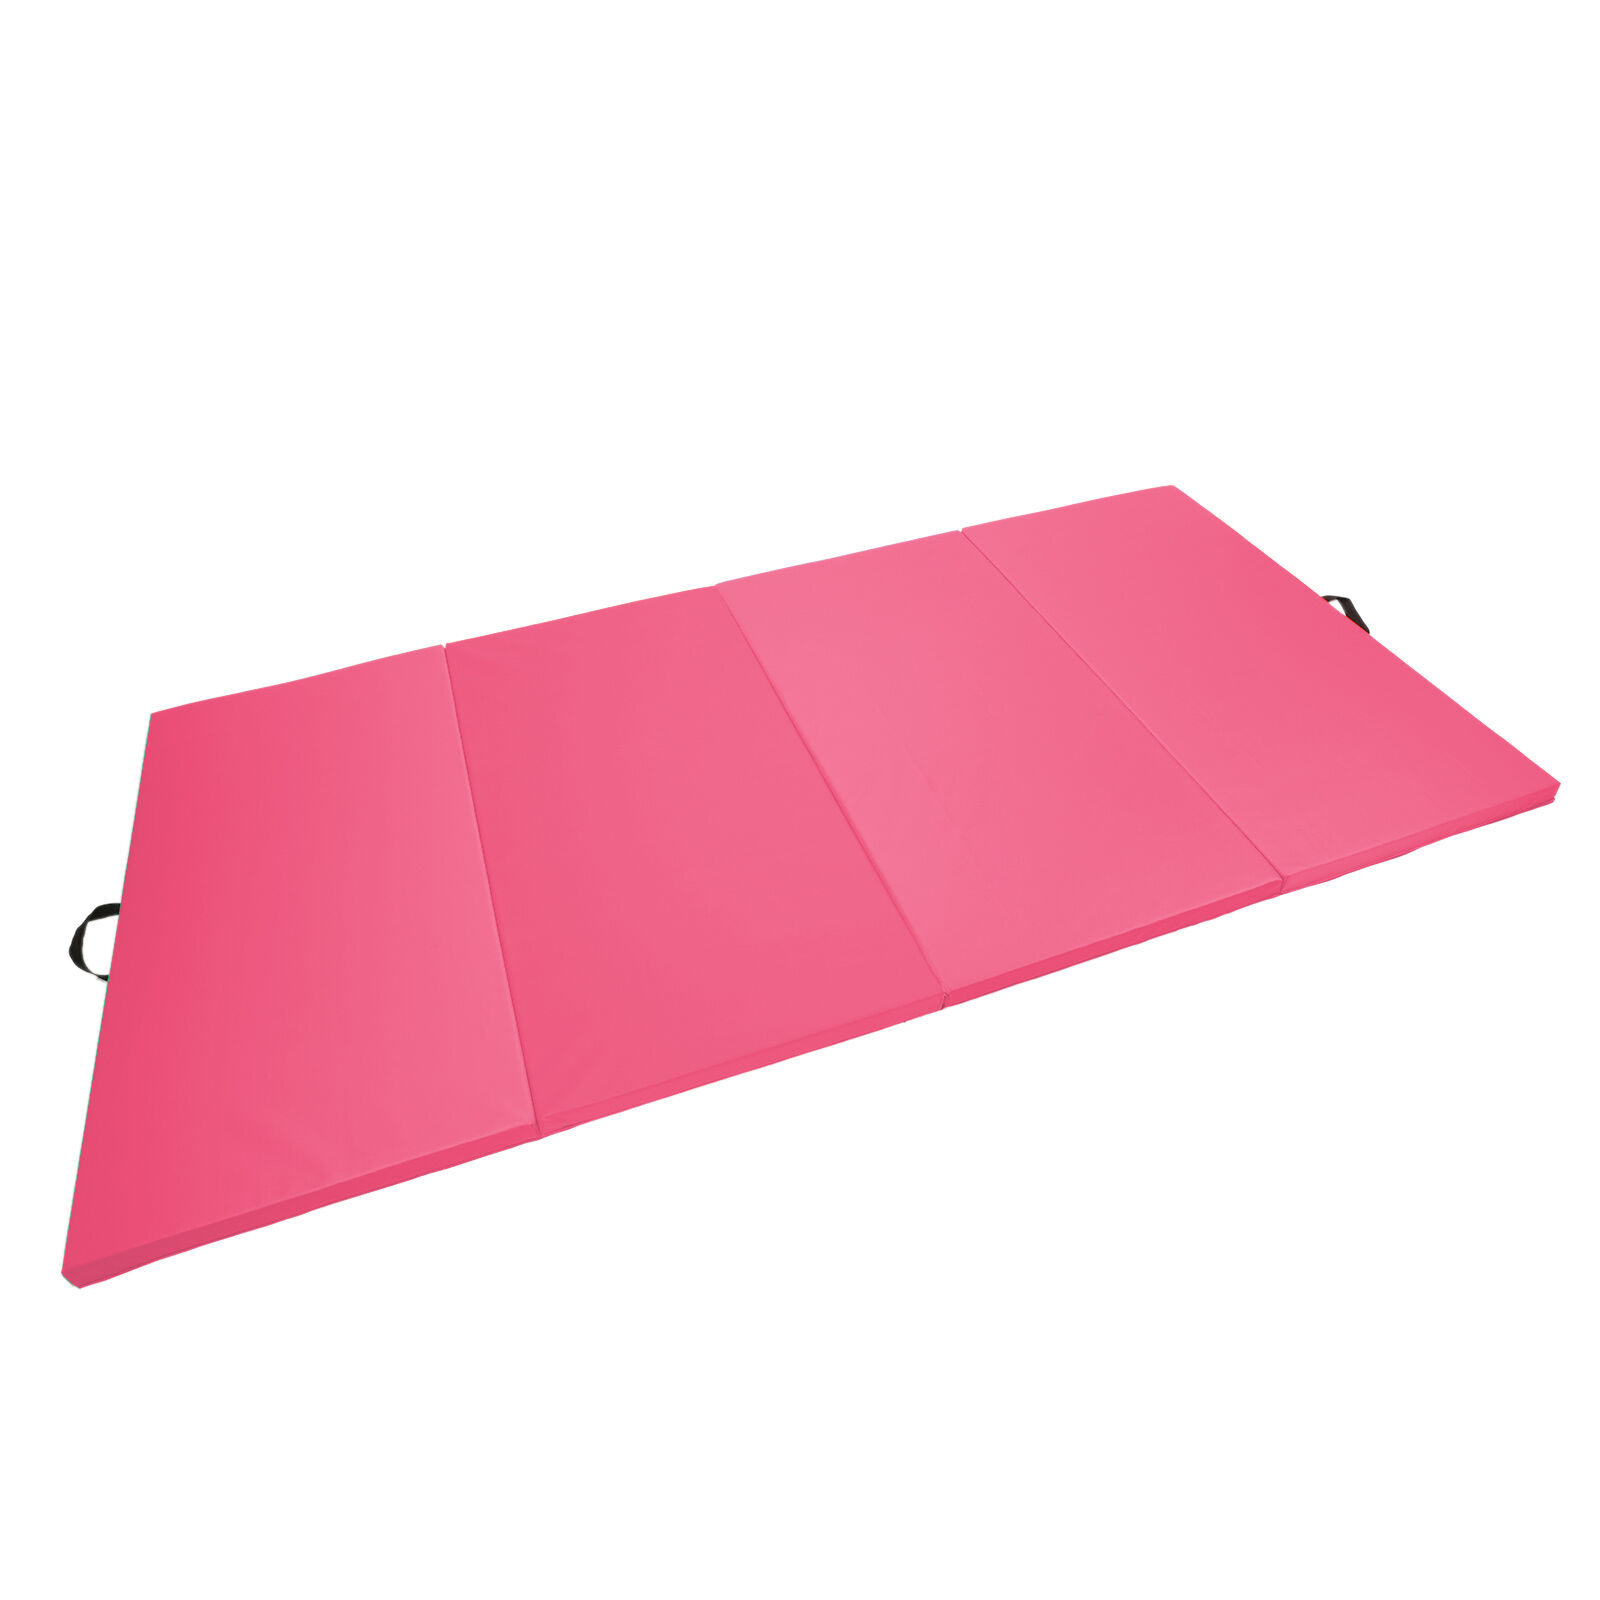 Gymnastics Mats For Home Walmart: Gymnastics Gym Folding Exercise Mat Gymnastics Tumbling